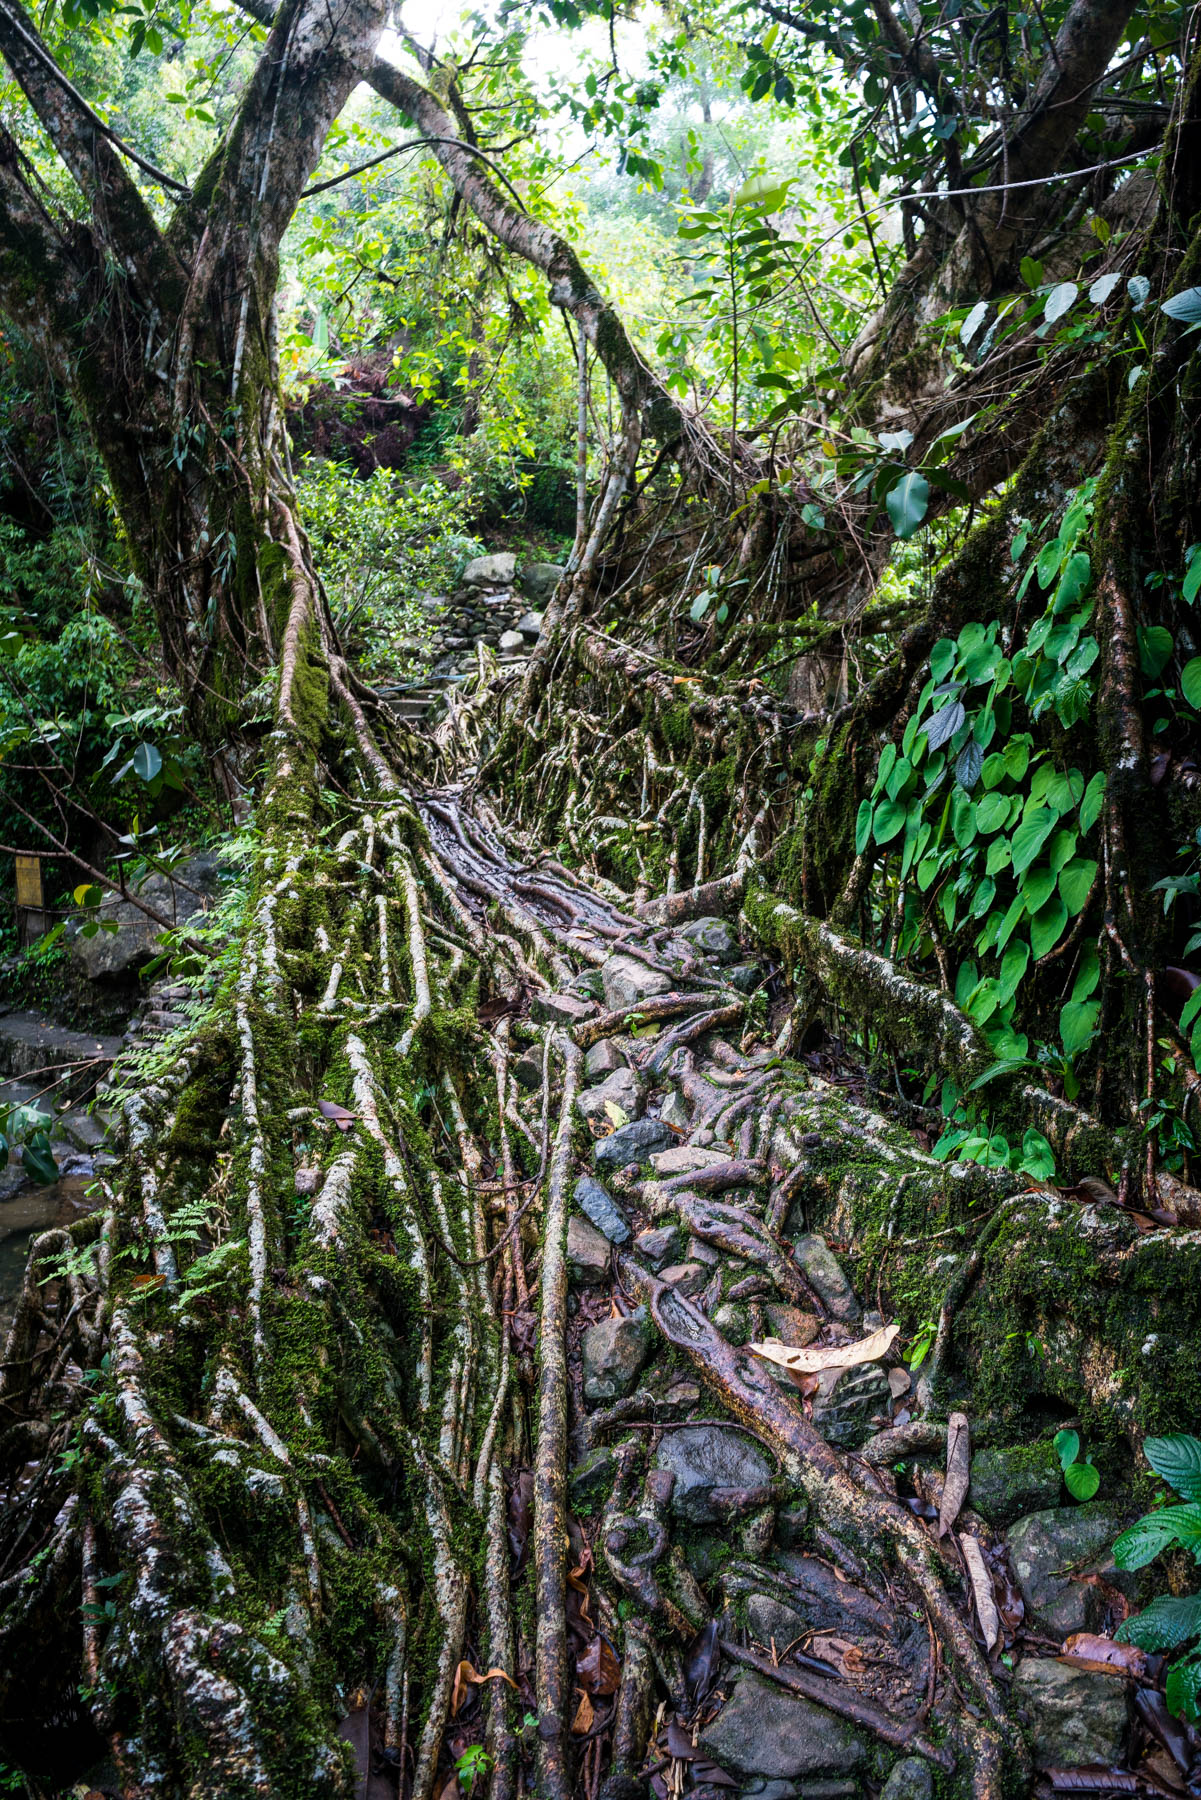 One of two levels of the Umshiang living root bridge near Nongriat village in Meghalaya state, India. The bridge is made from the roots of rubber trees, carefully guided across the expanse with betel nut tree trunks over several decades.